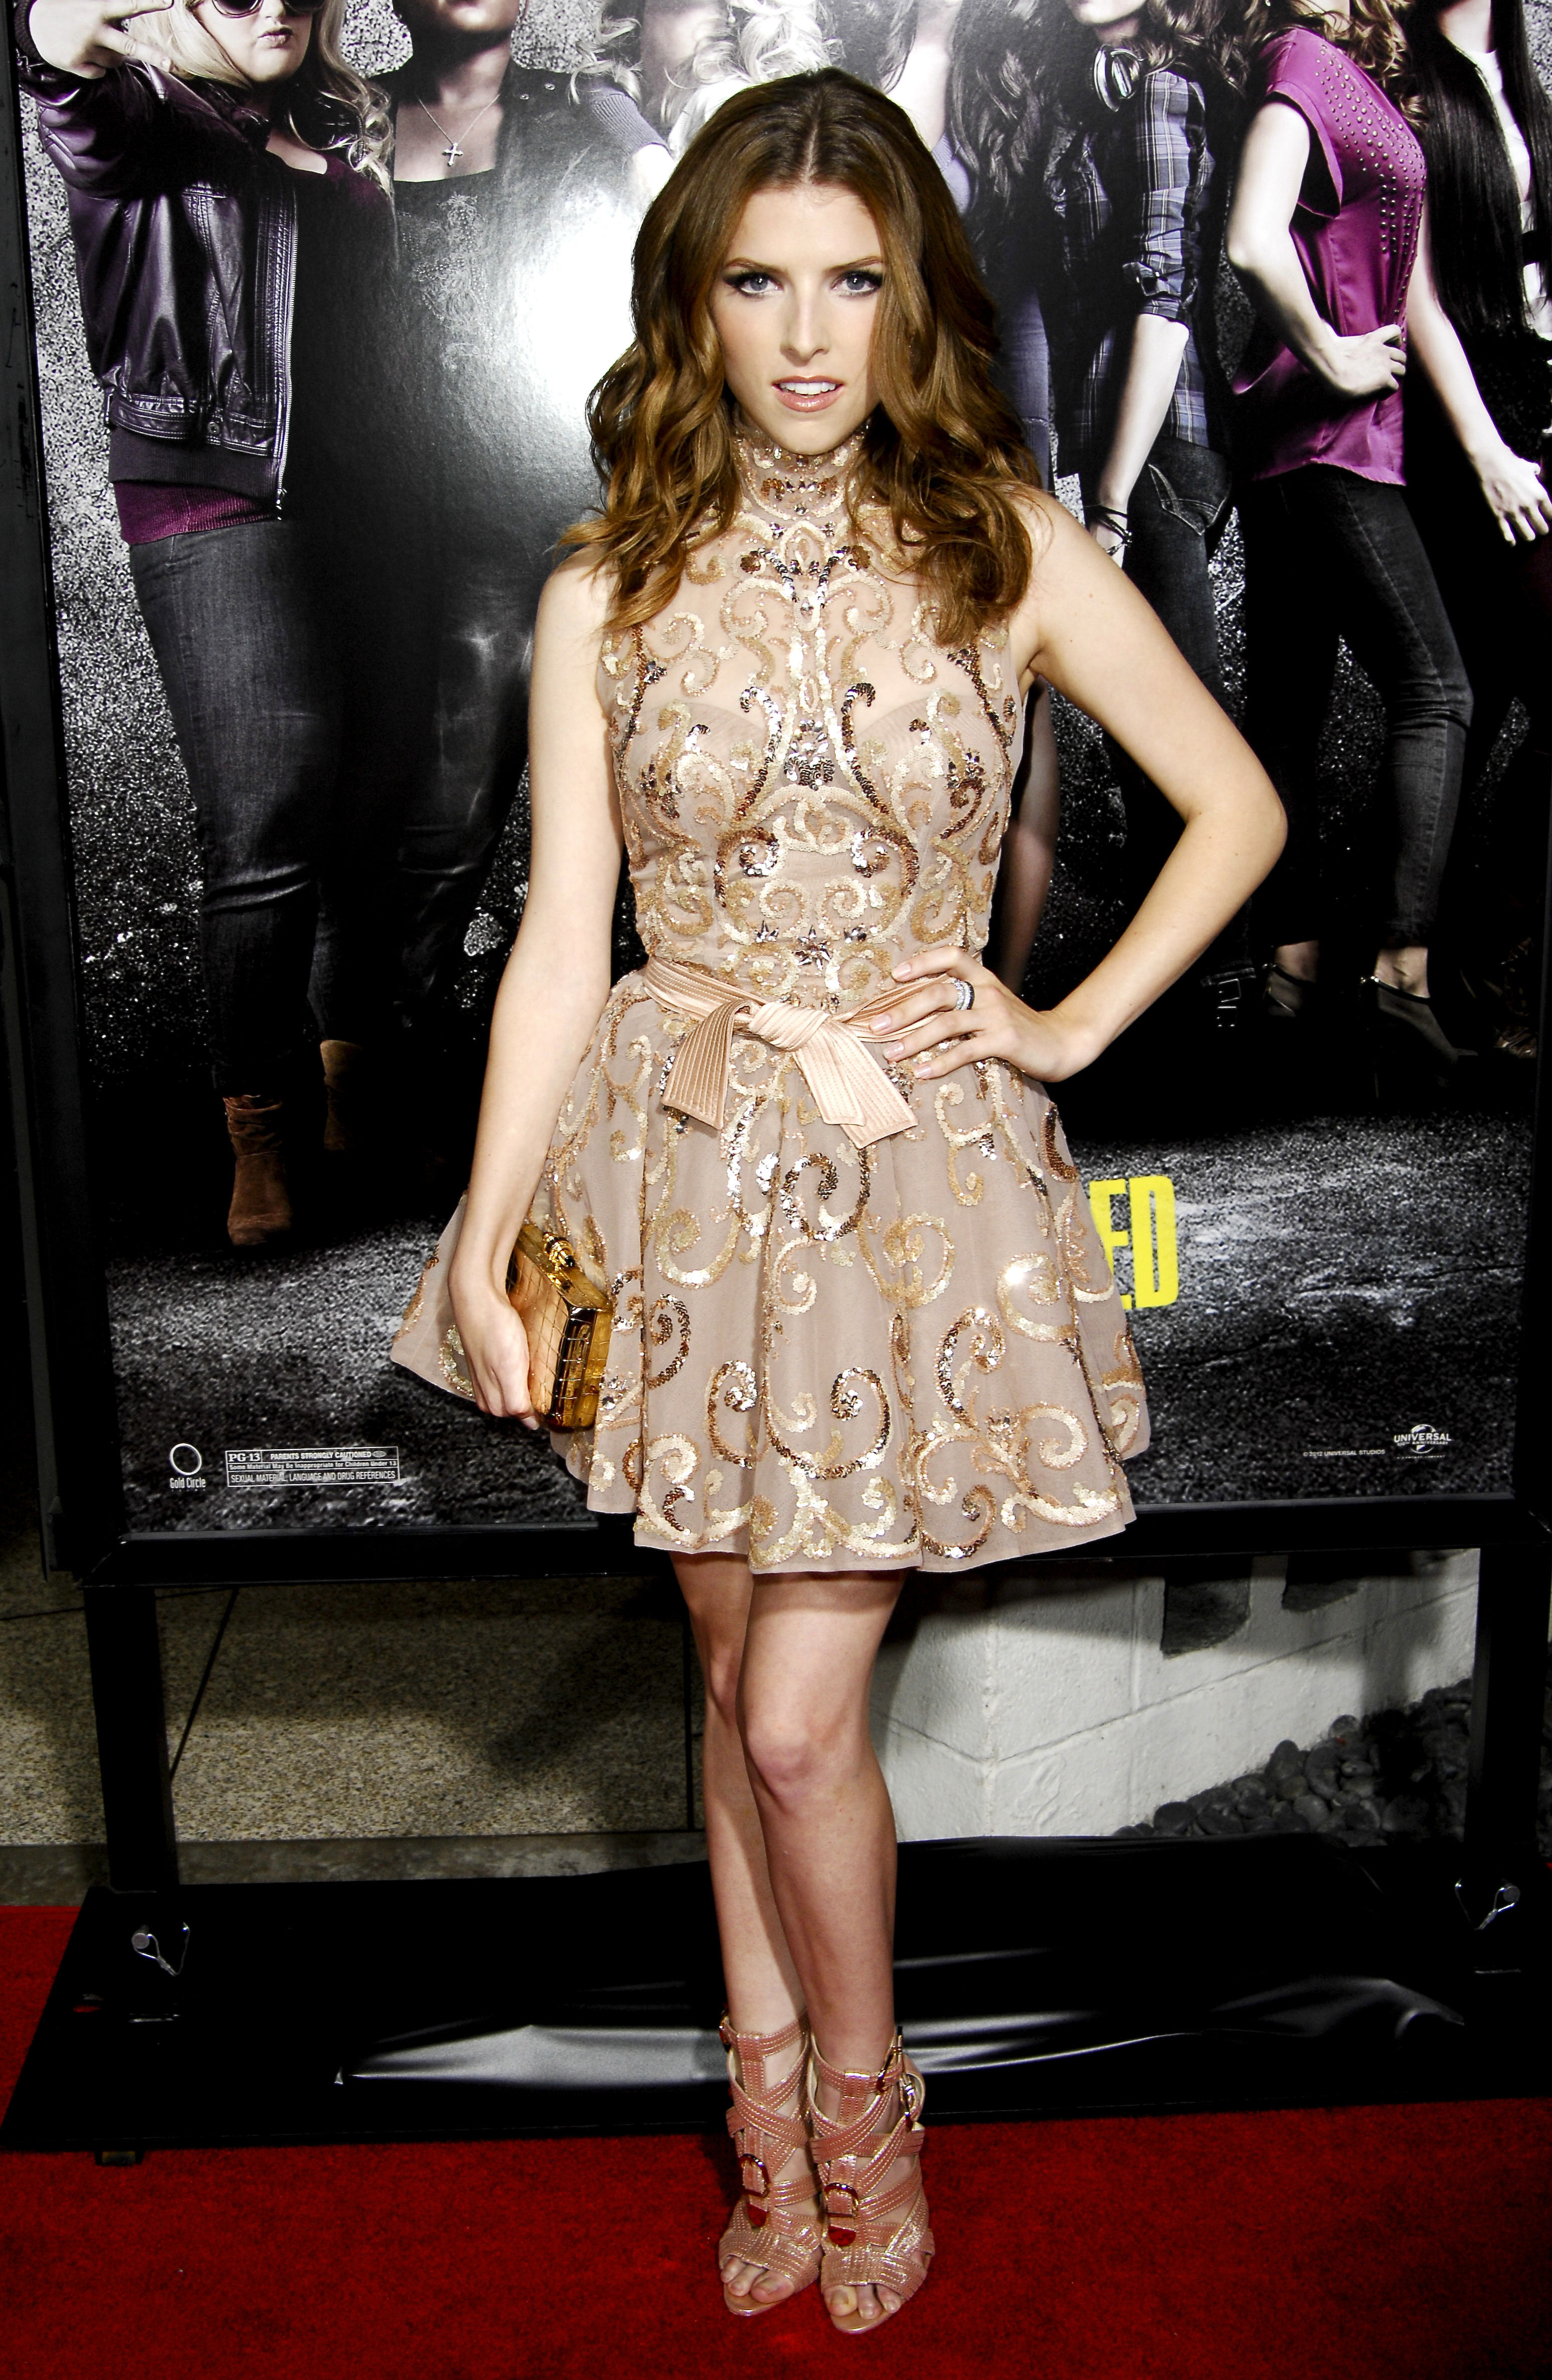 595265712_Anna_Kendrick_Hollywood_Premiere_of_Pitch_Perfect6_122_350lo.jpg